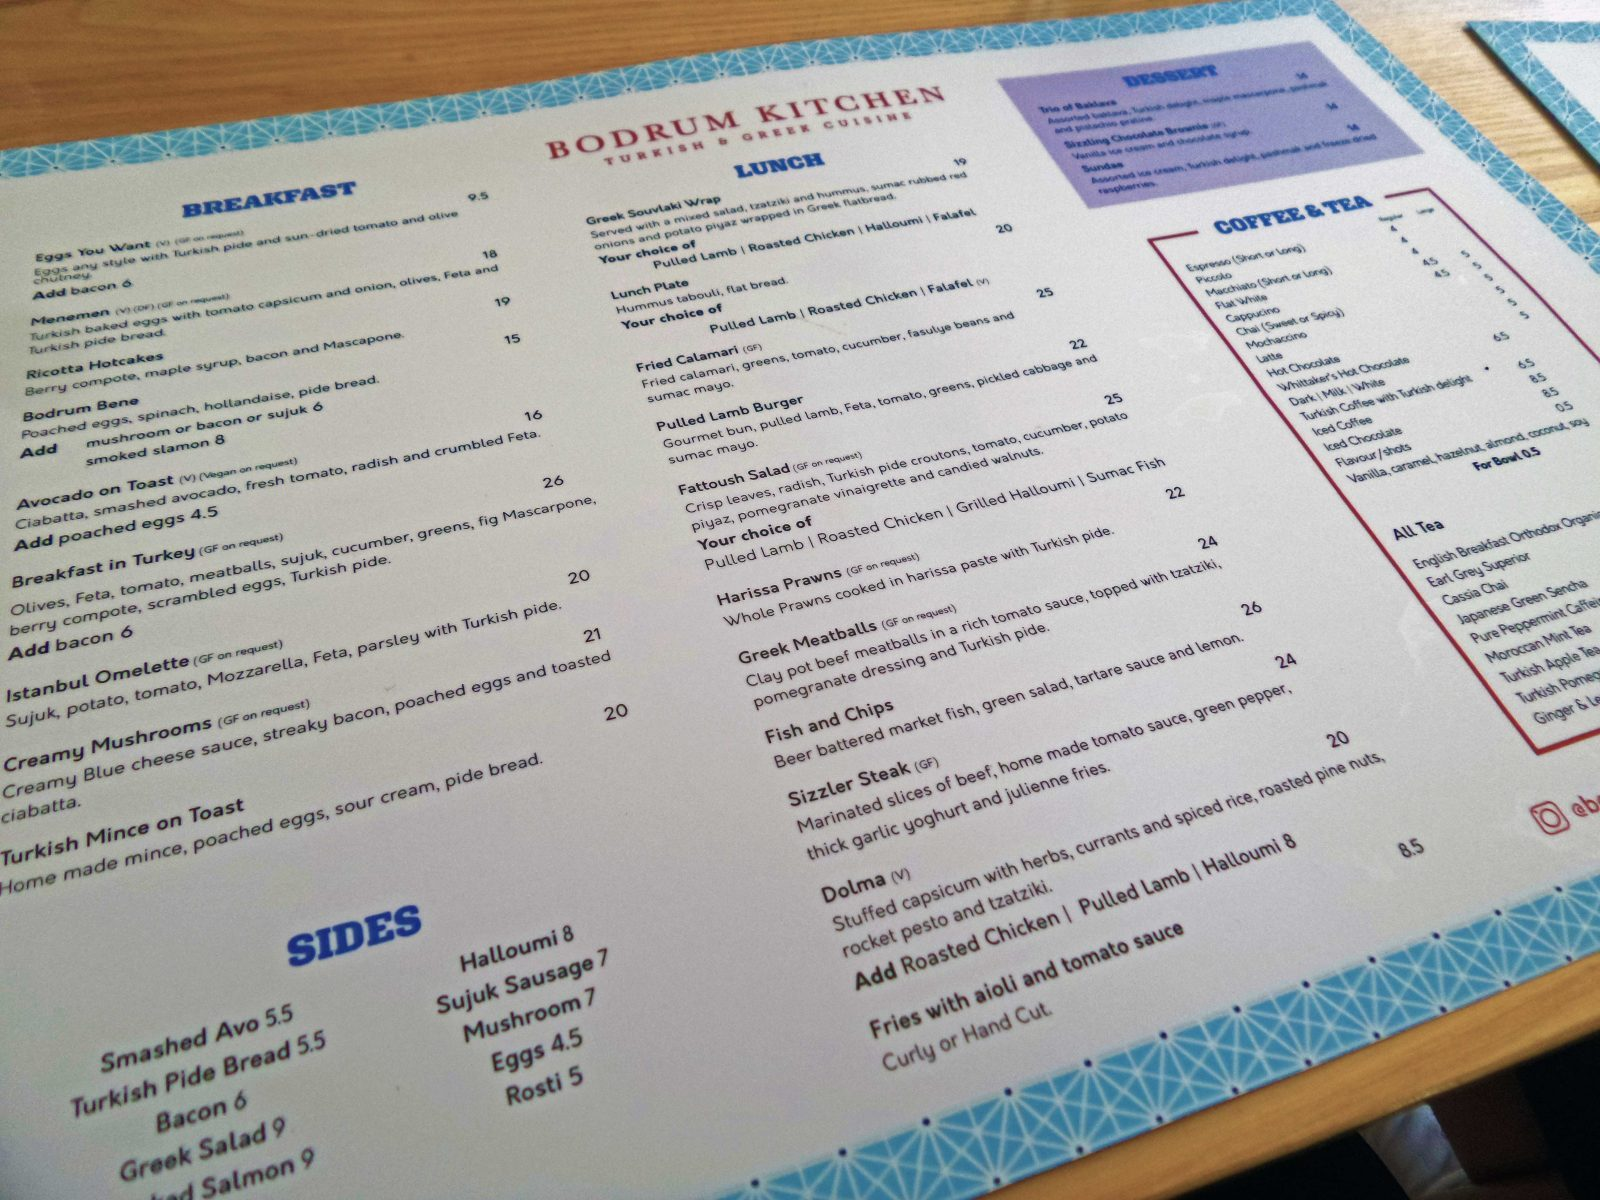 Bodrum Kitchen Menu